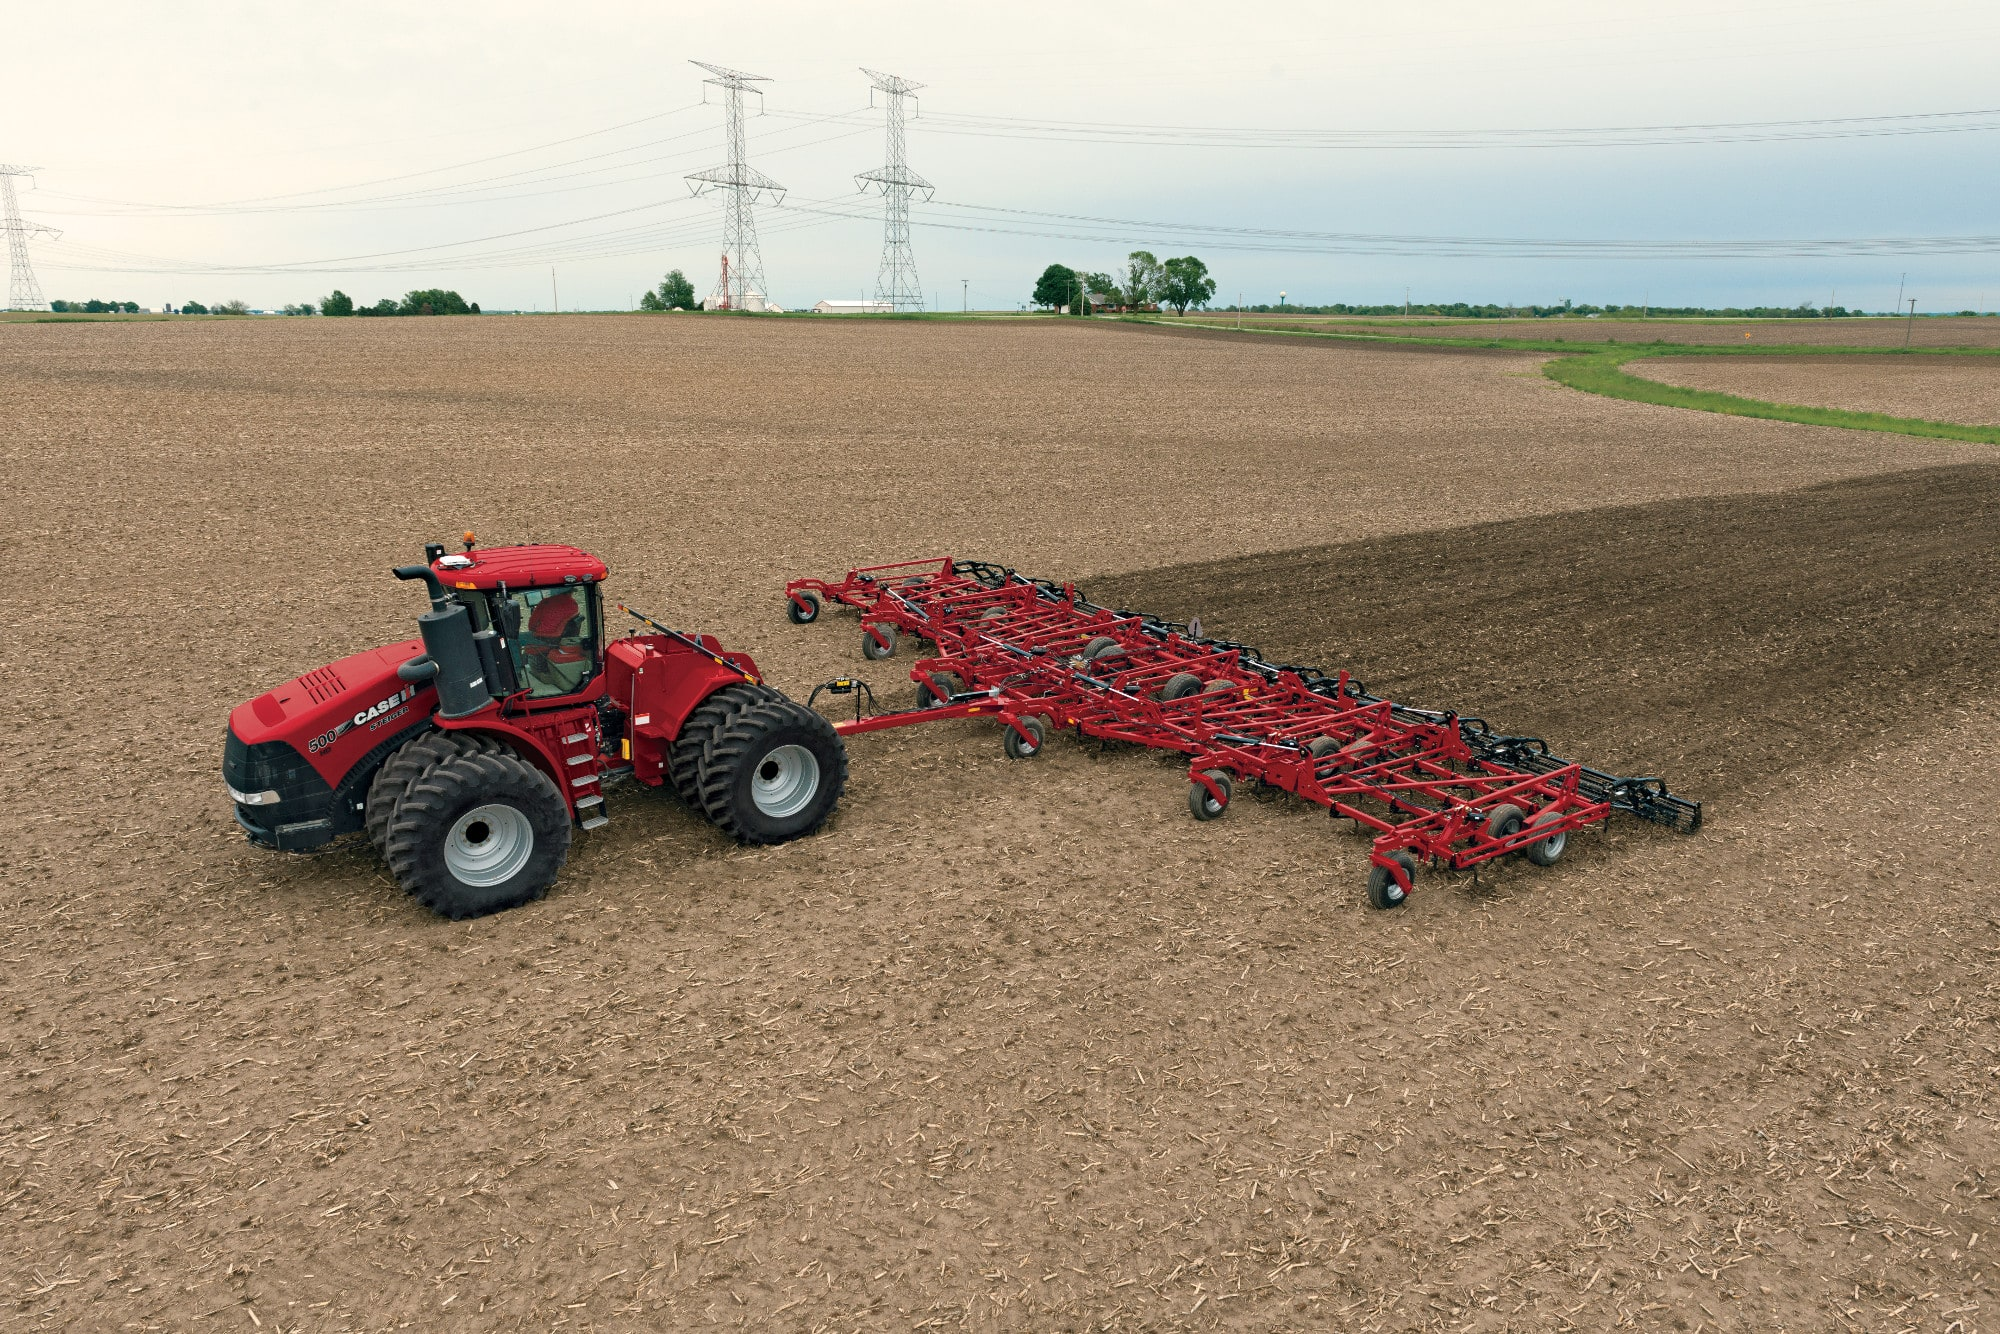 Seedbed Sensing Technology to Measure Agronomic Quality of the Seedbed